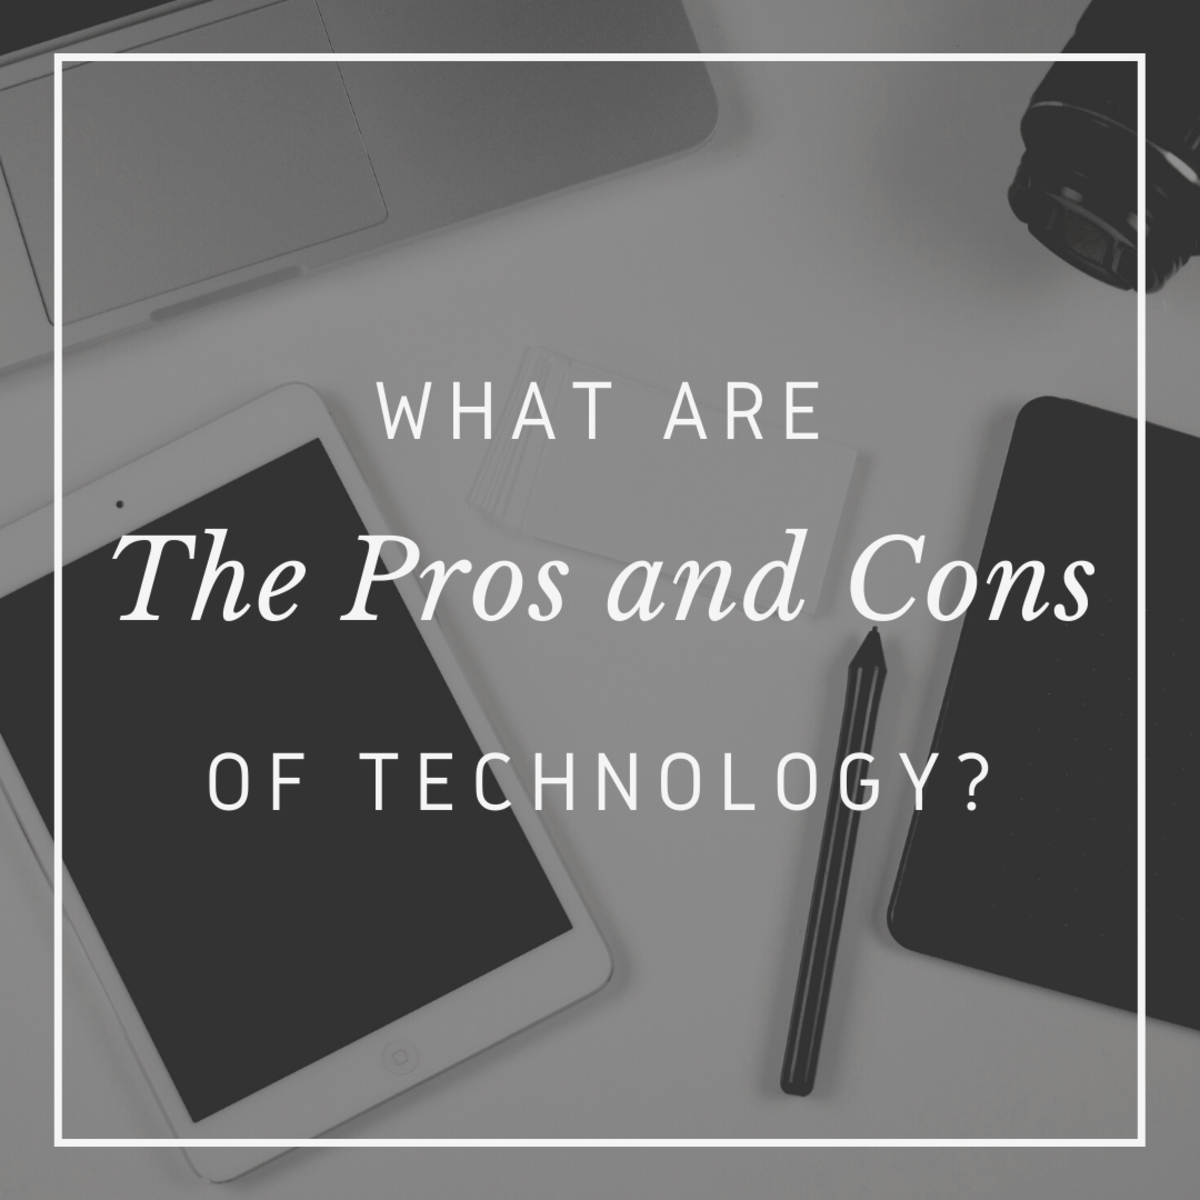 The Advantages and Disadvantages of Technology